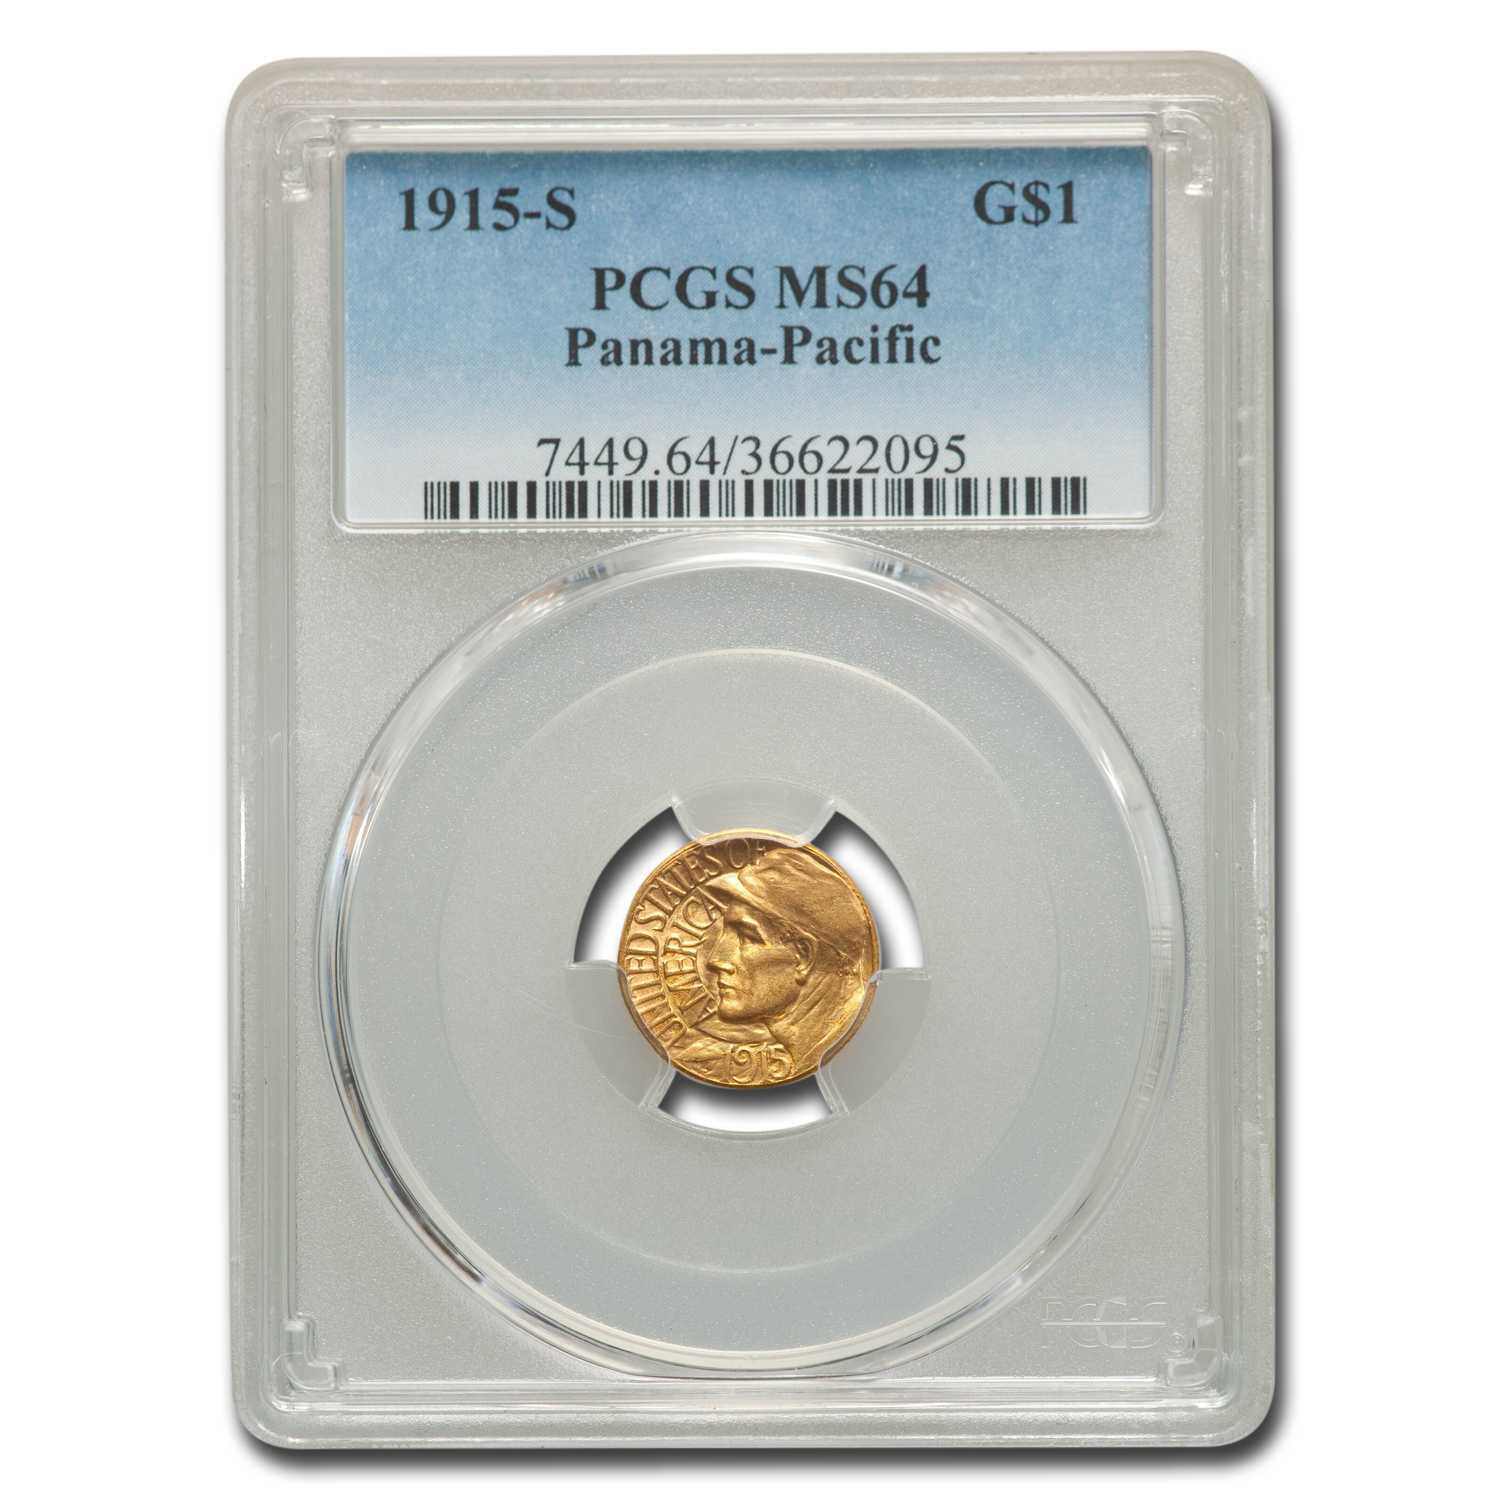 1915-S Gold $1.00 Panama-Pacific MS-64 PCGS